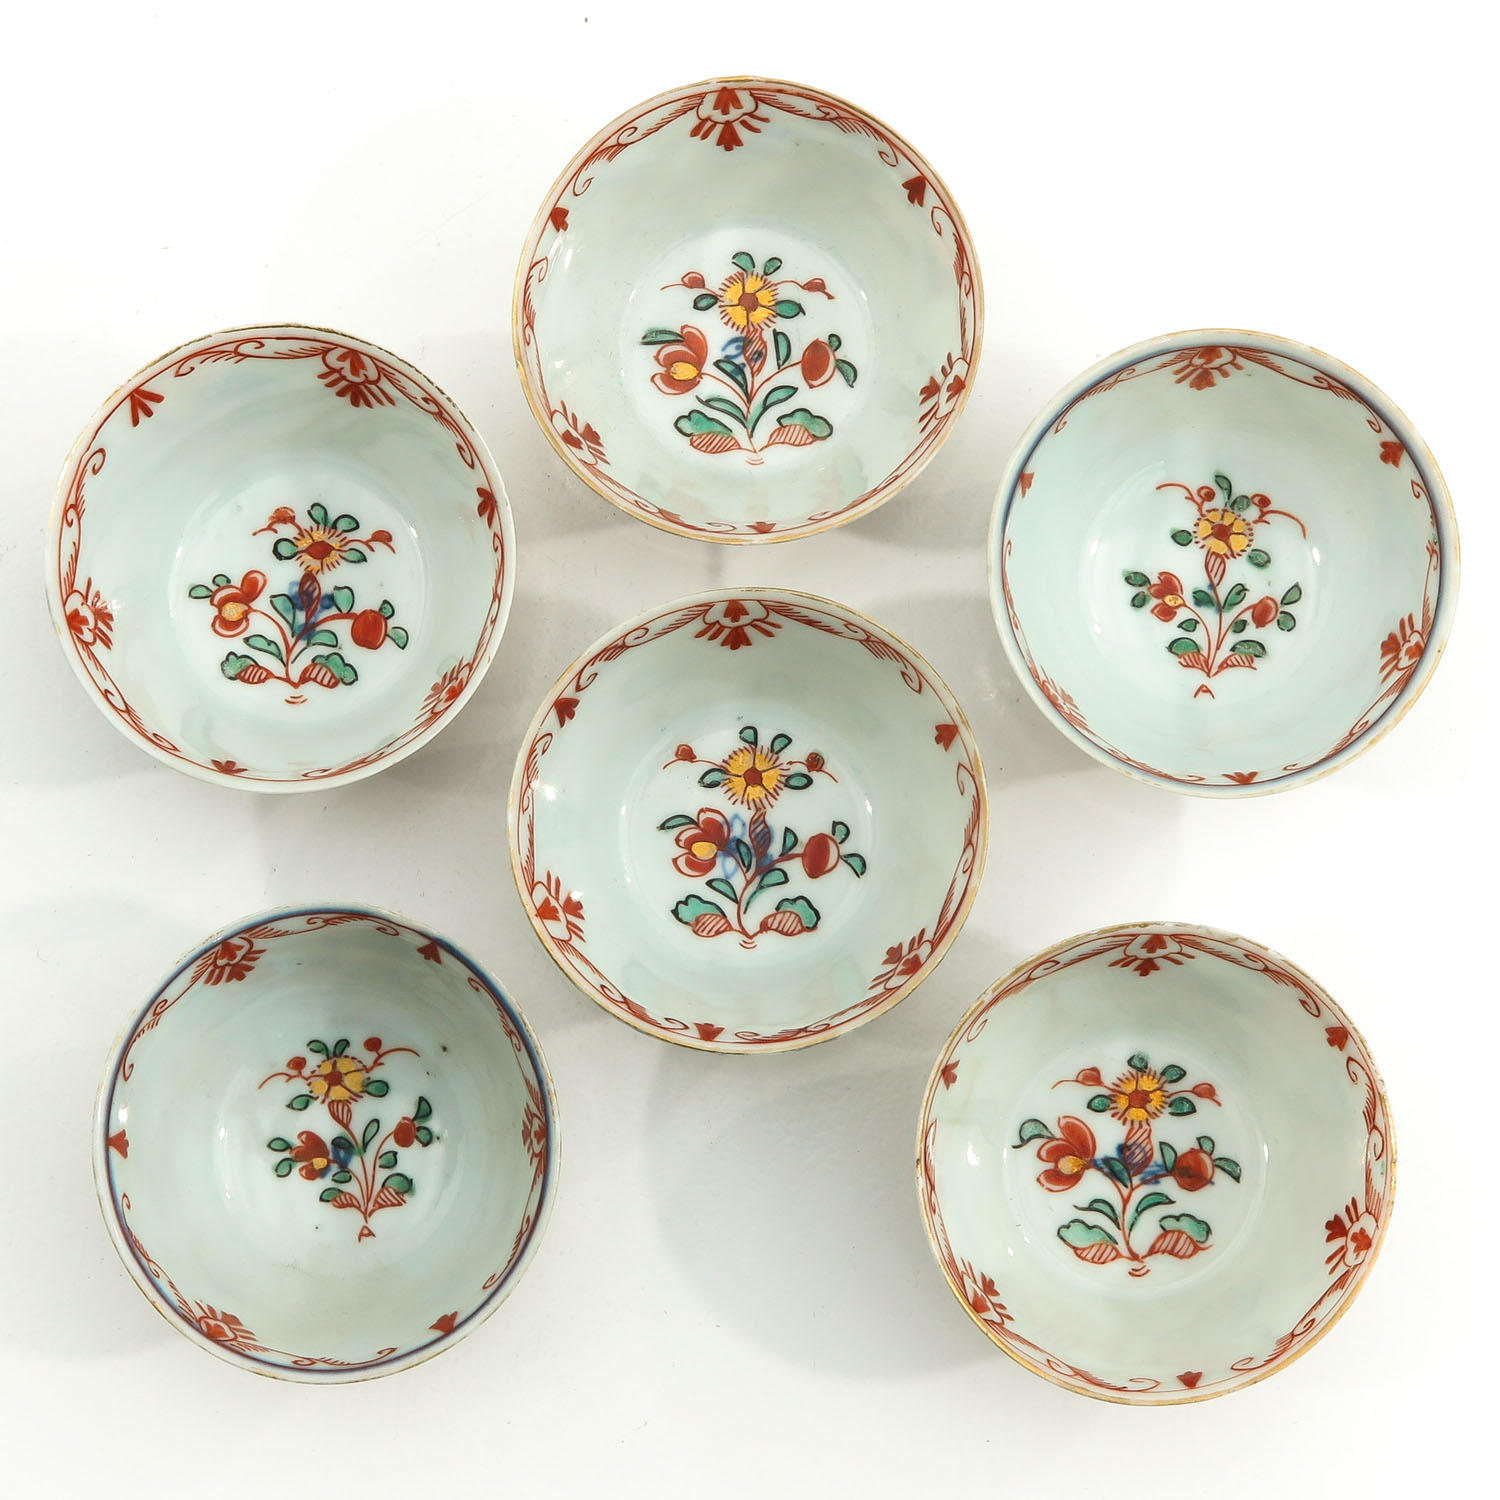 A Series of 6 Cups and Saucers - Image 5 of 10